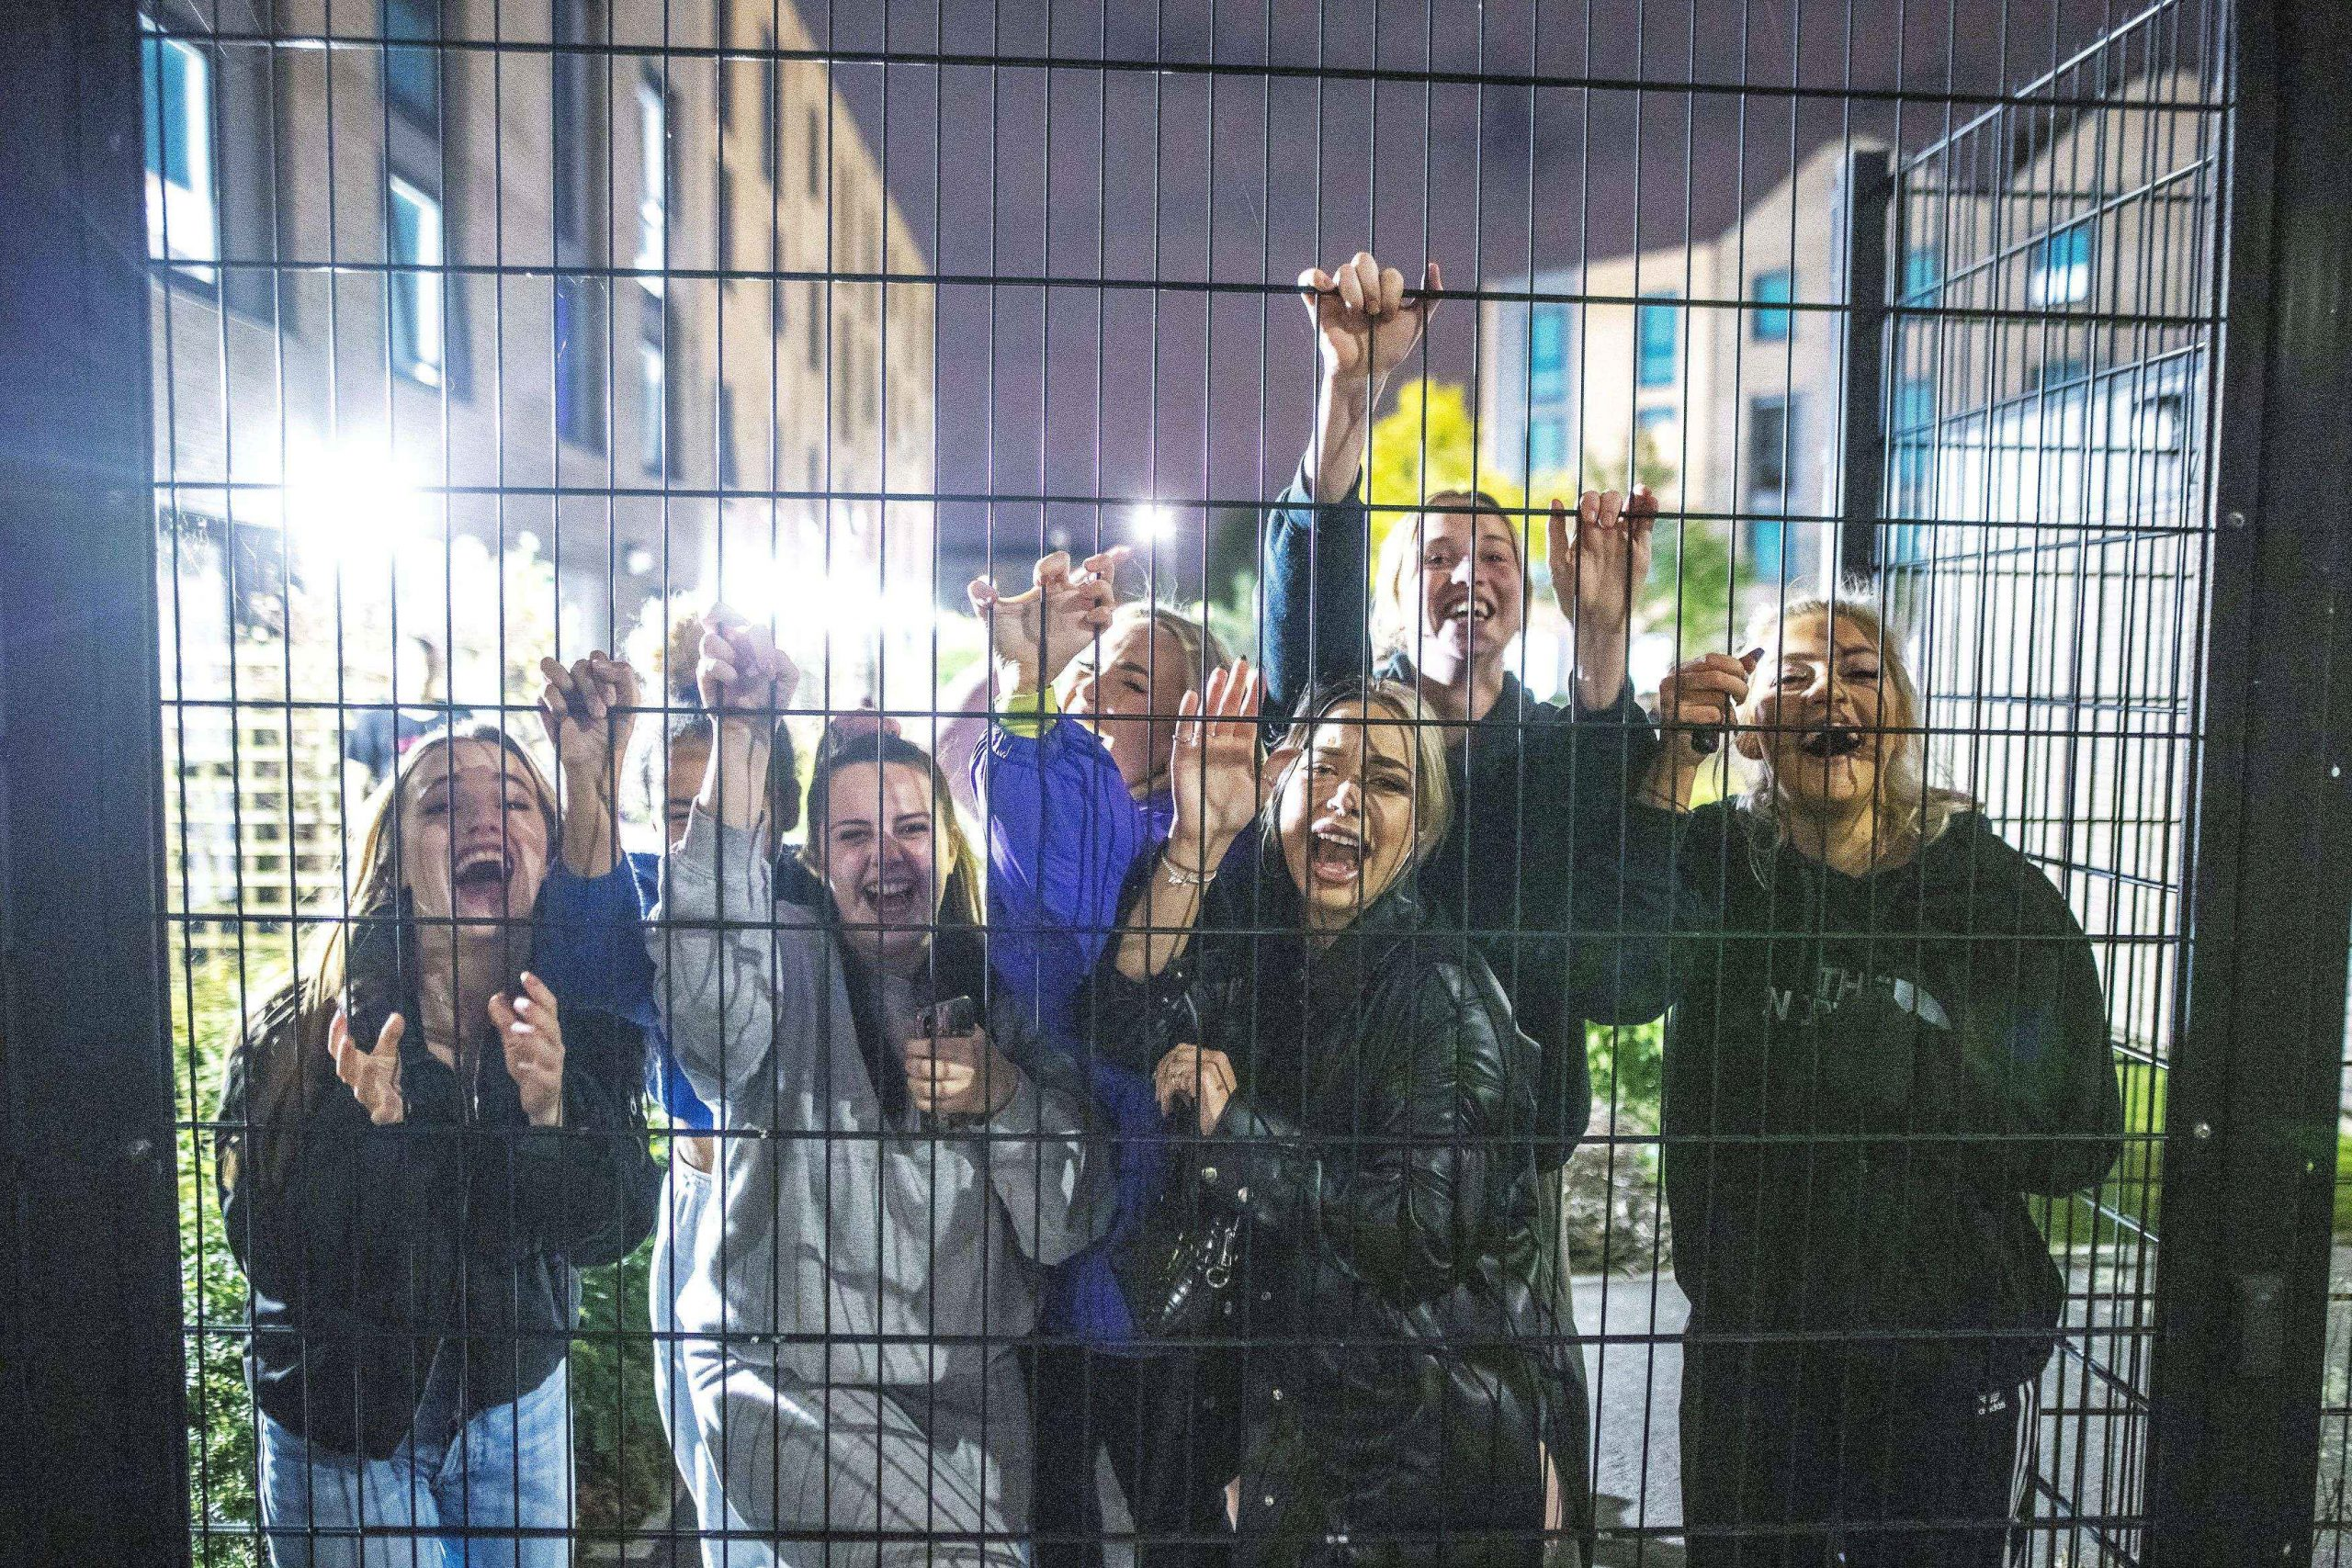 University students fenced in at university halls